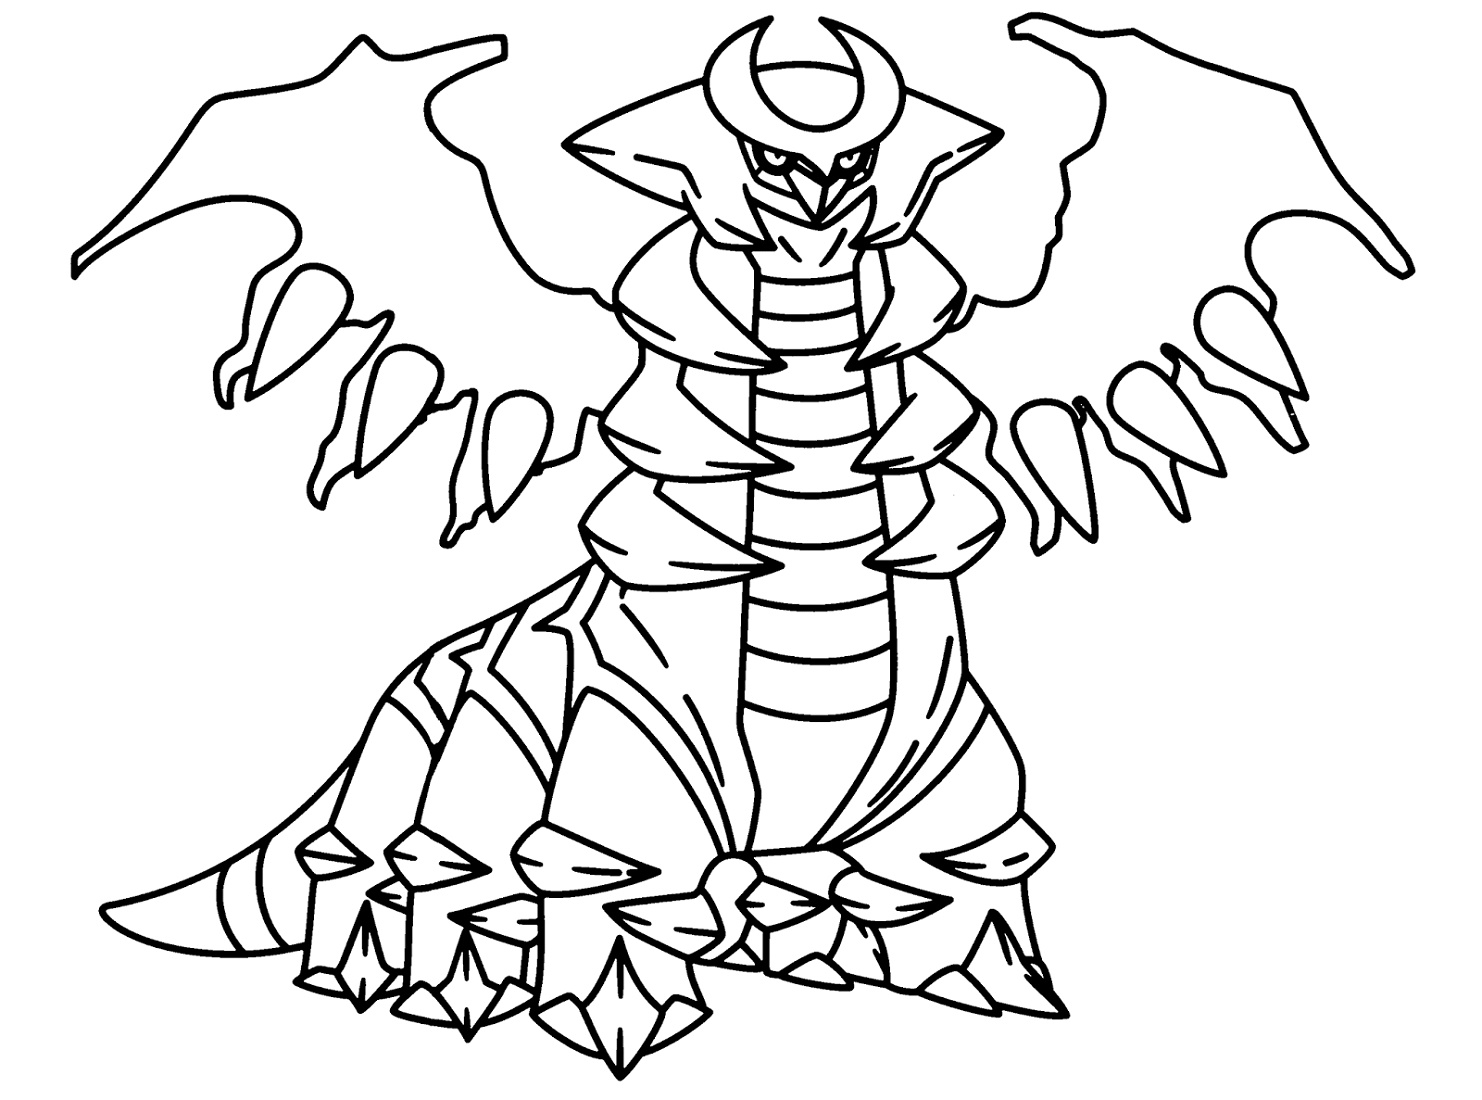 colouring in pokemon coloring page pokemon coloring pages 755 in colouring pokemon